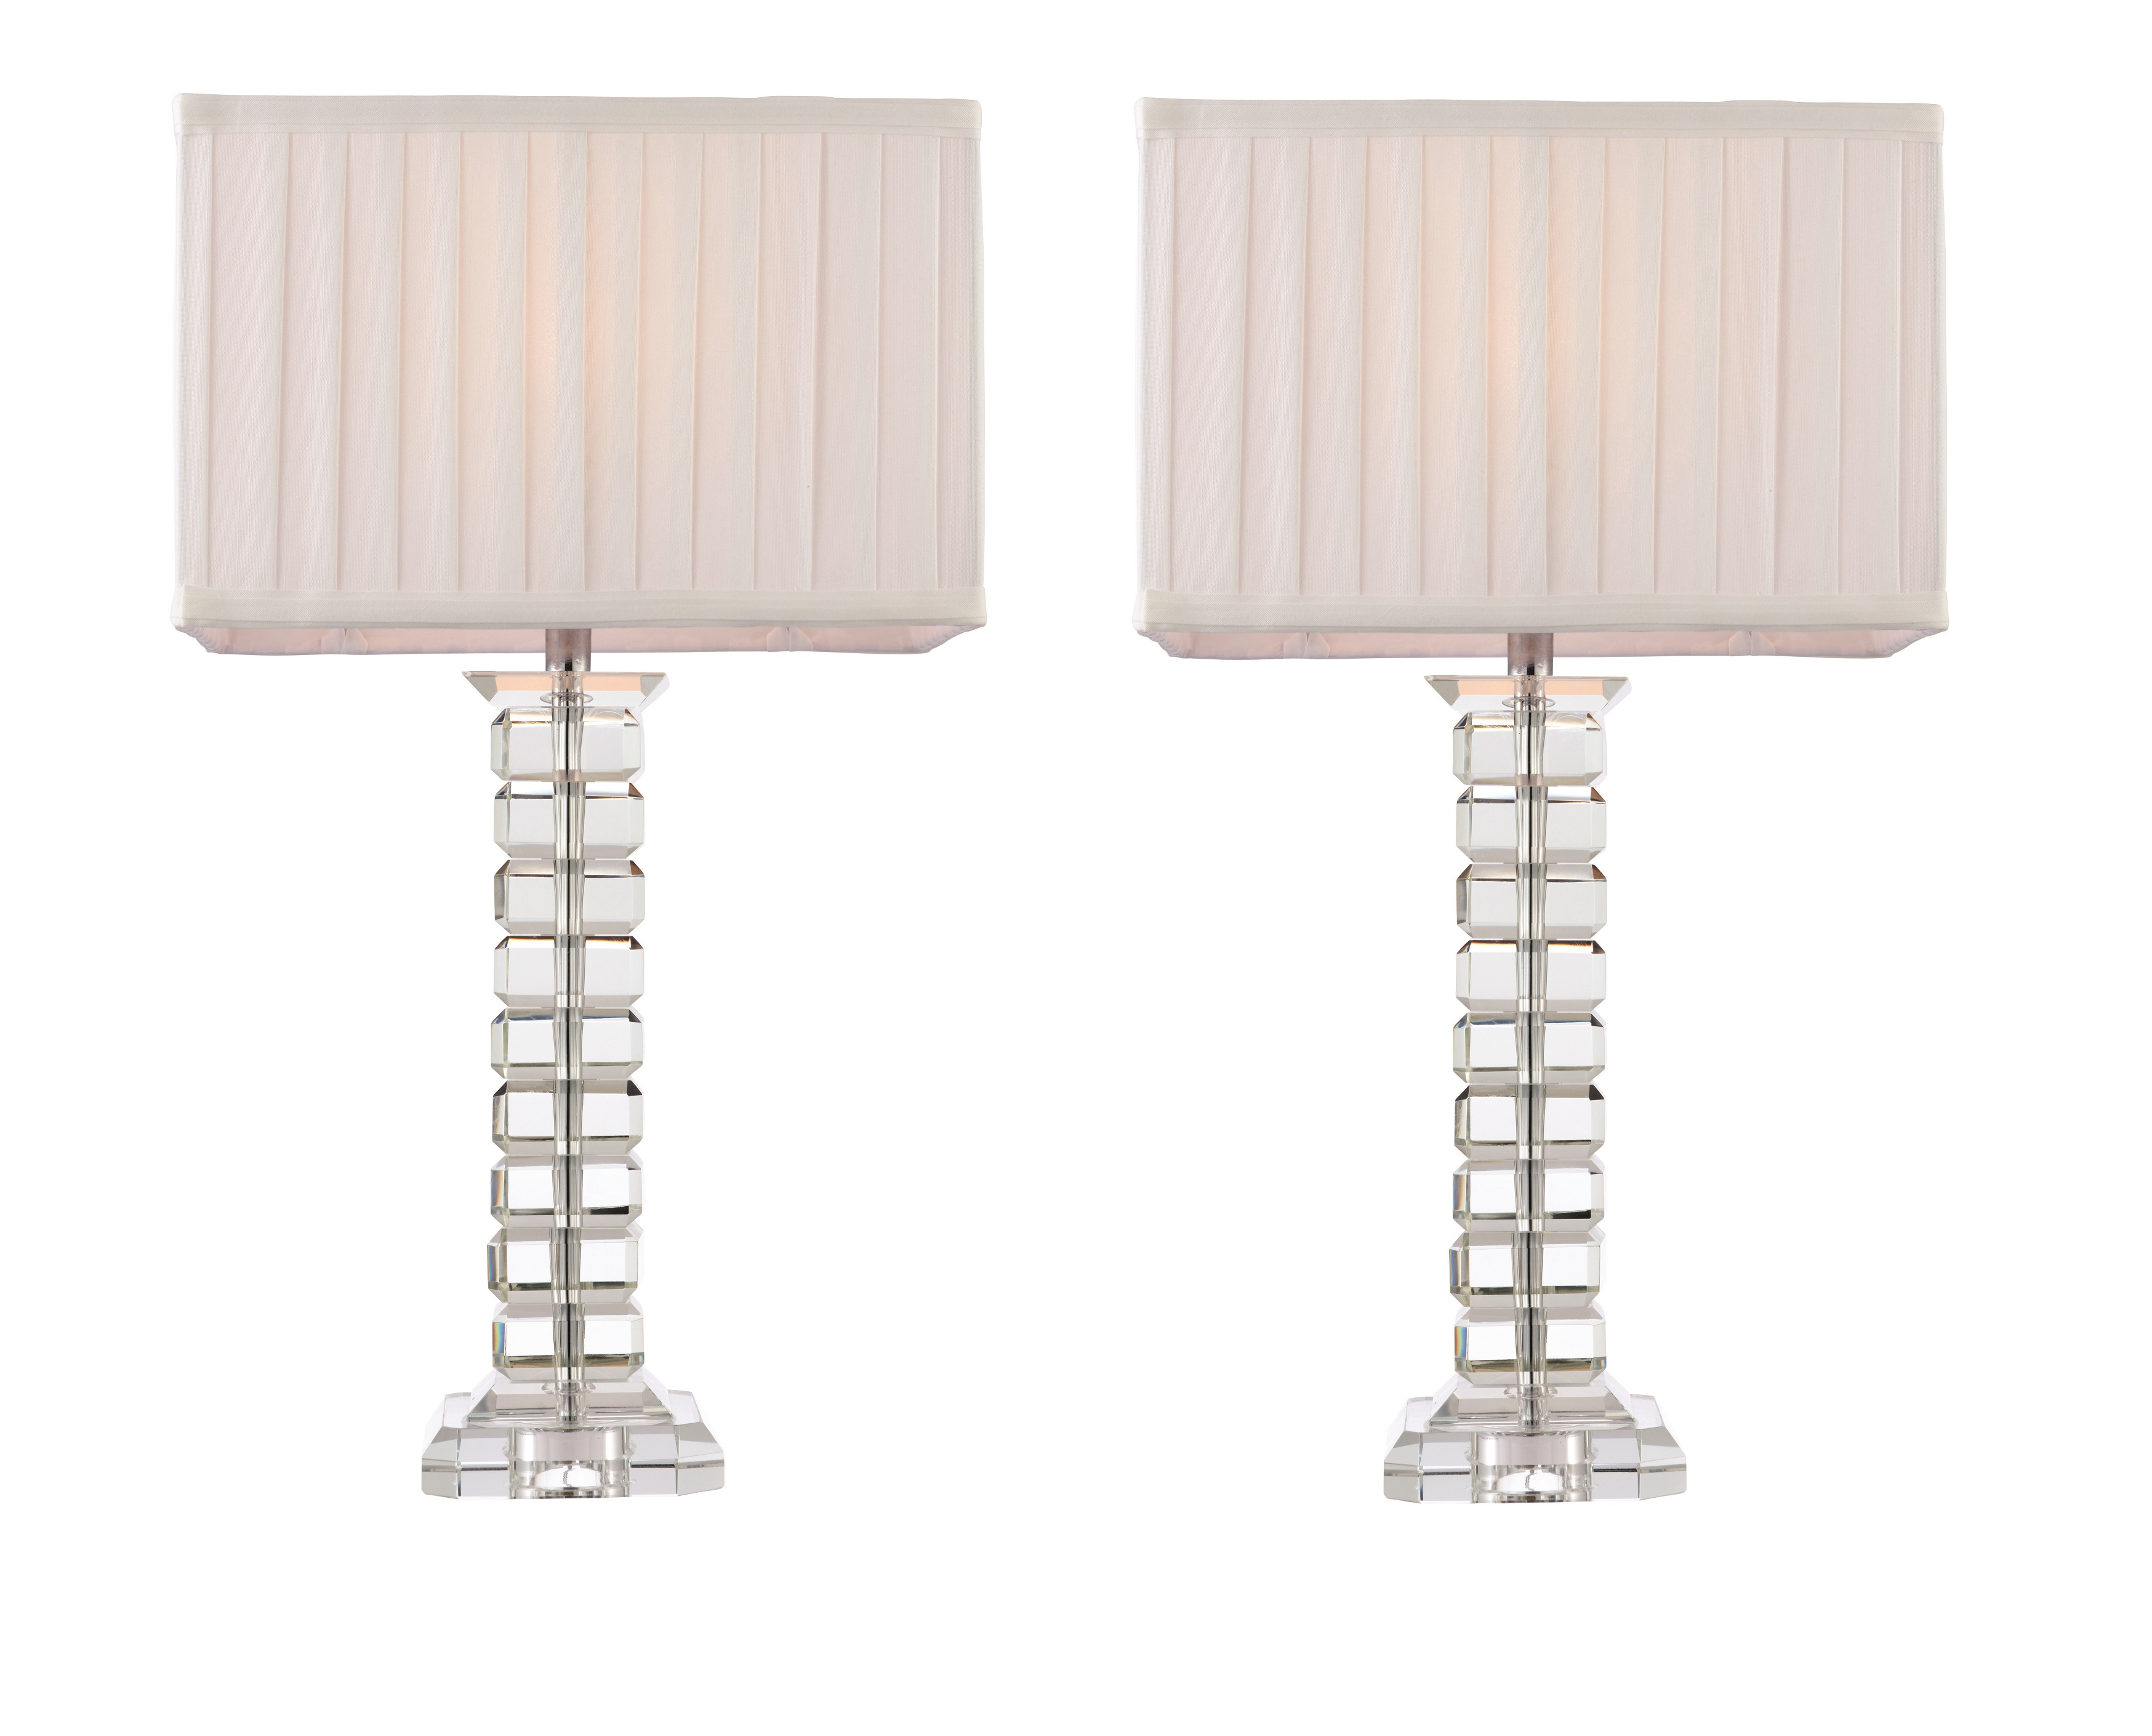 Tall Bedside Lamps Pair Of Tall Modern Glass Table Light Bedside Lamp Lights